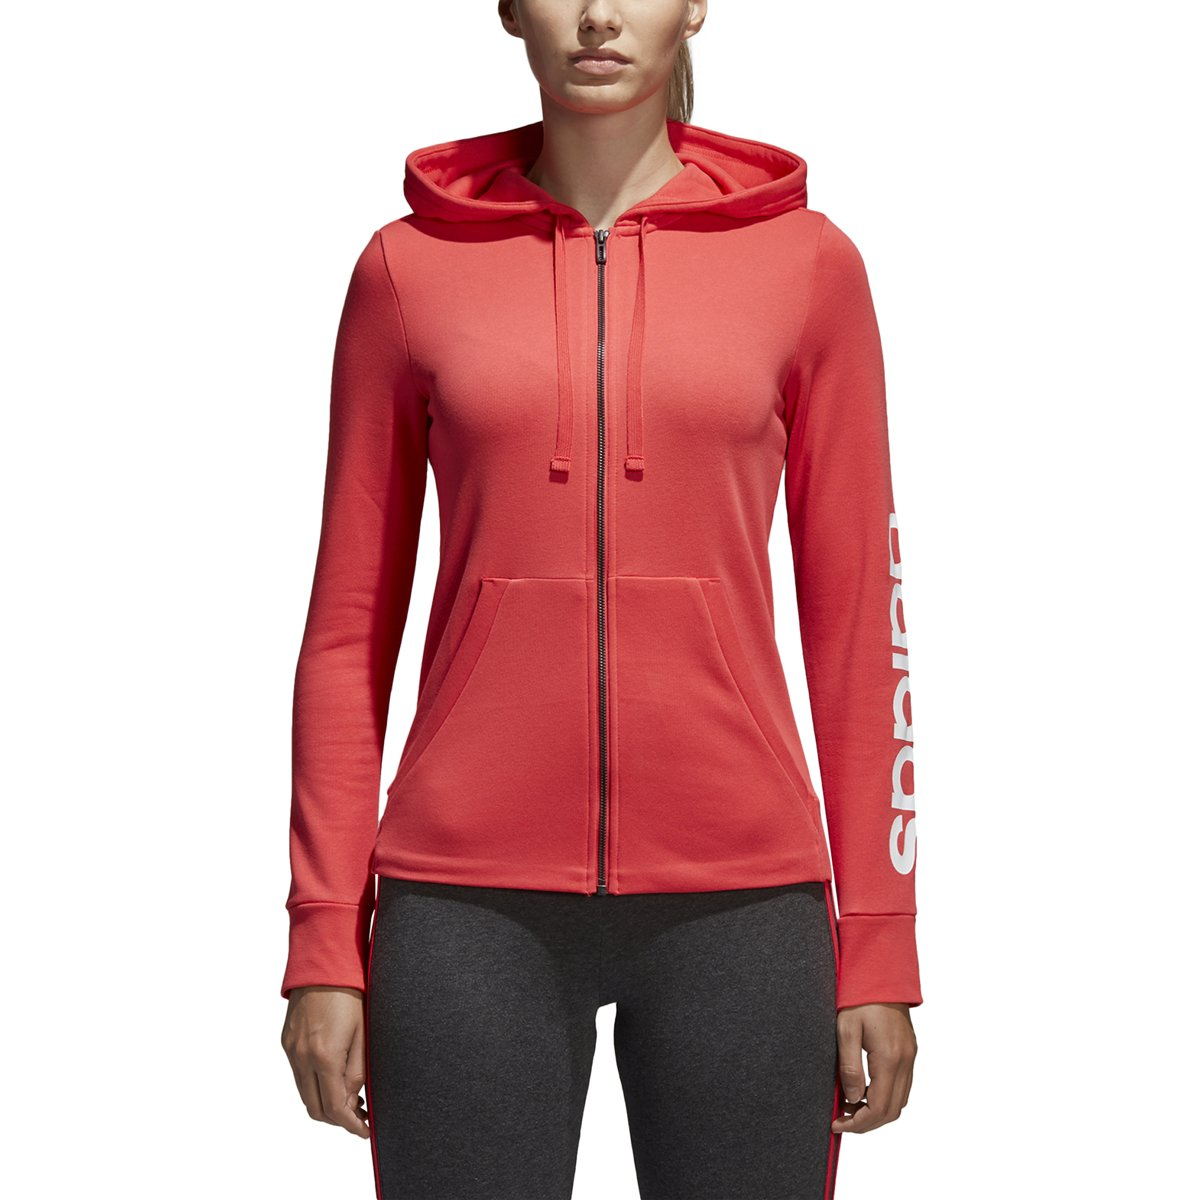 adidas Women's Essentials Linear Full Zip Fleece Hoodie, Real Coral/White, X-Small